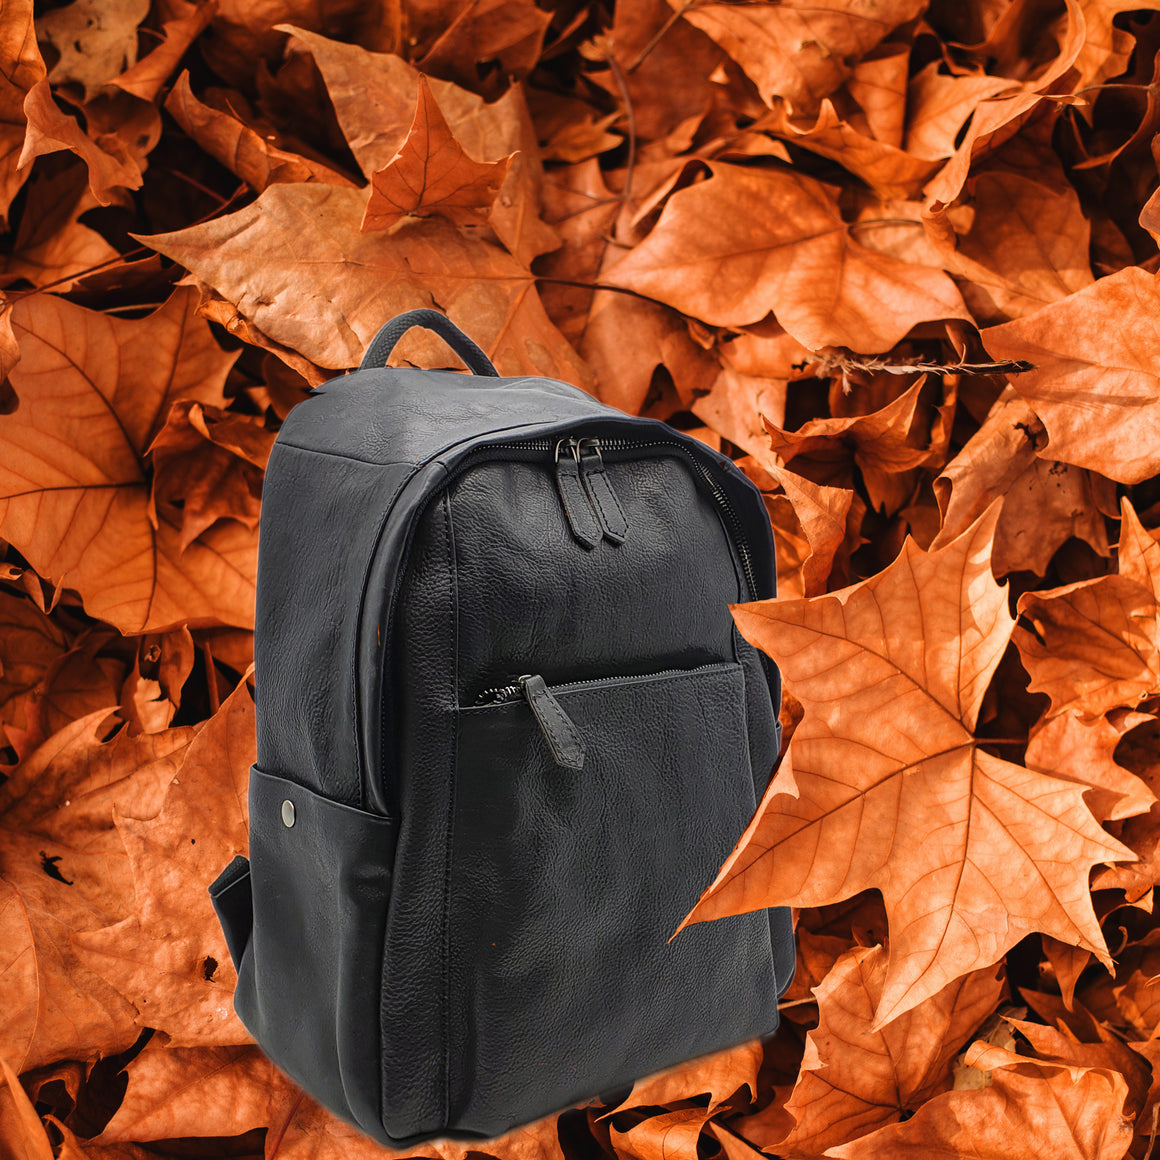 Backpack Black, Series-9